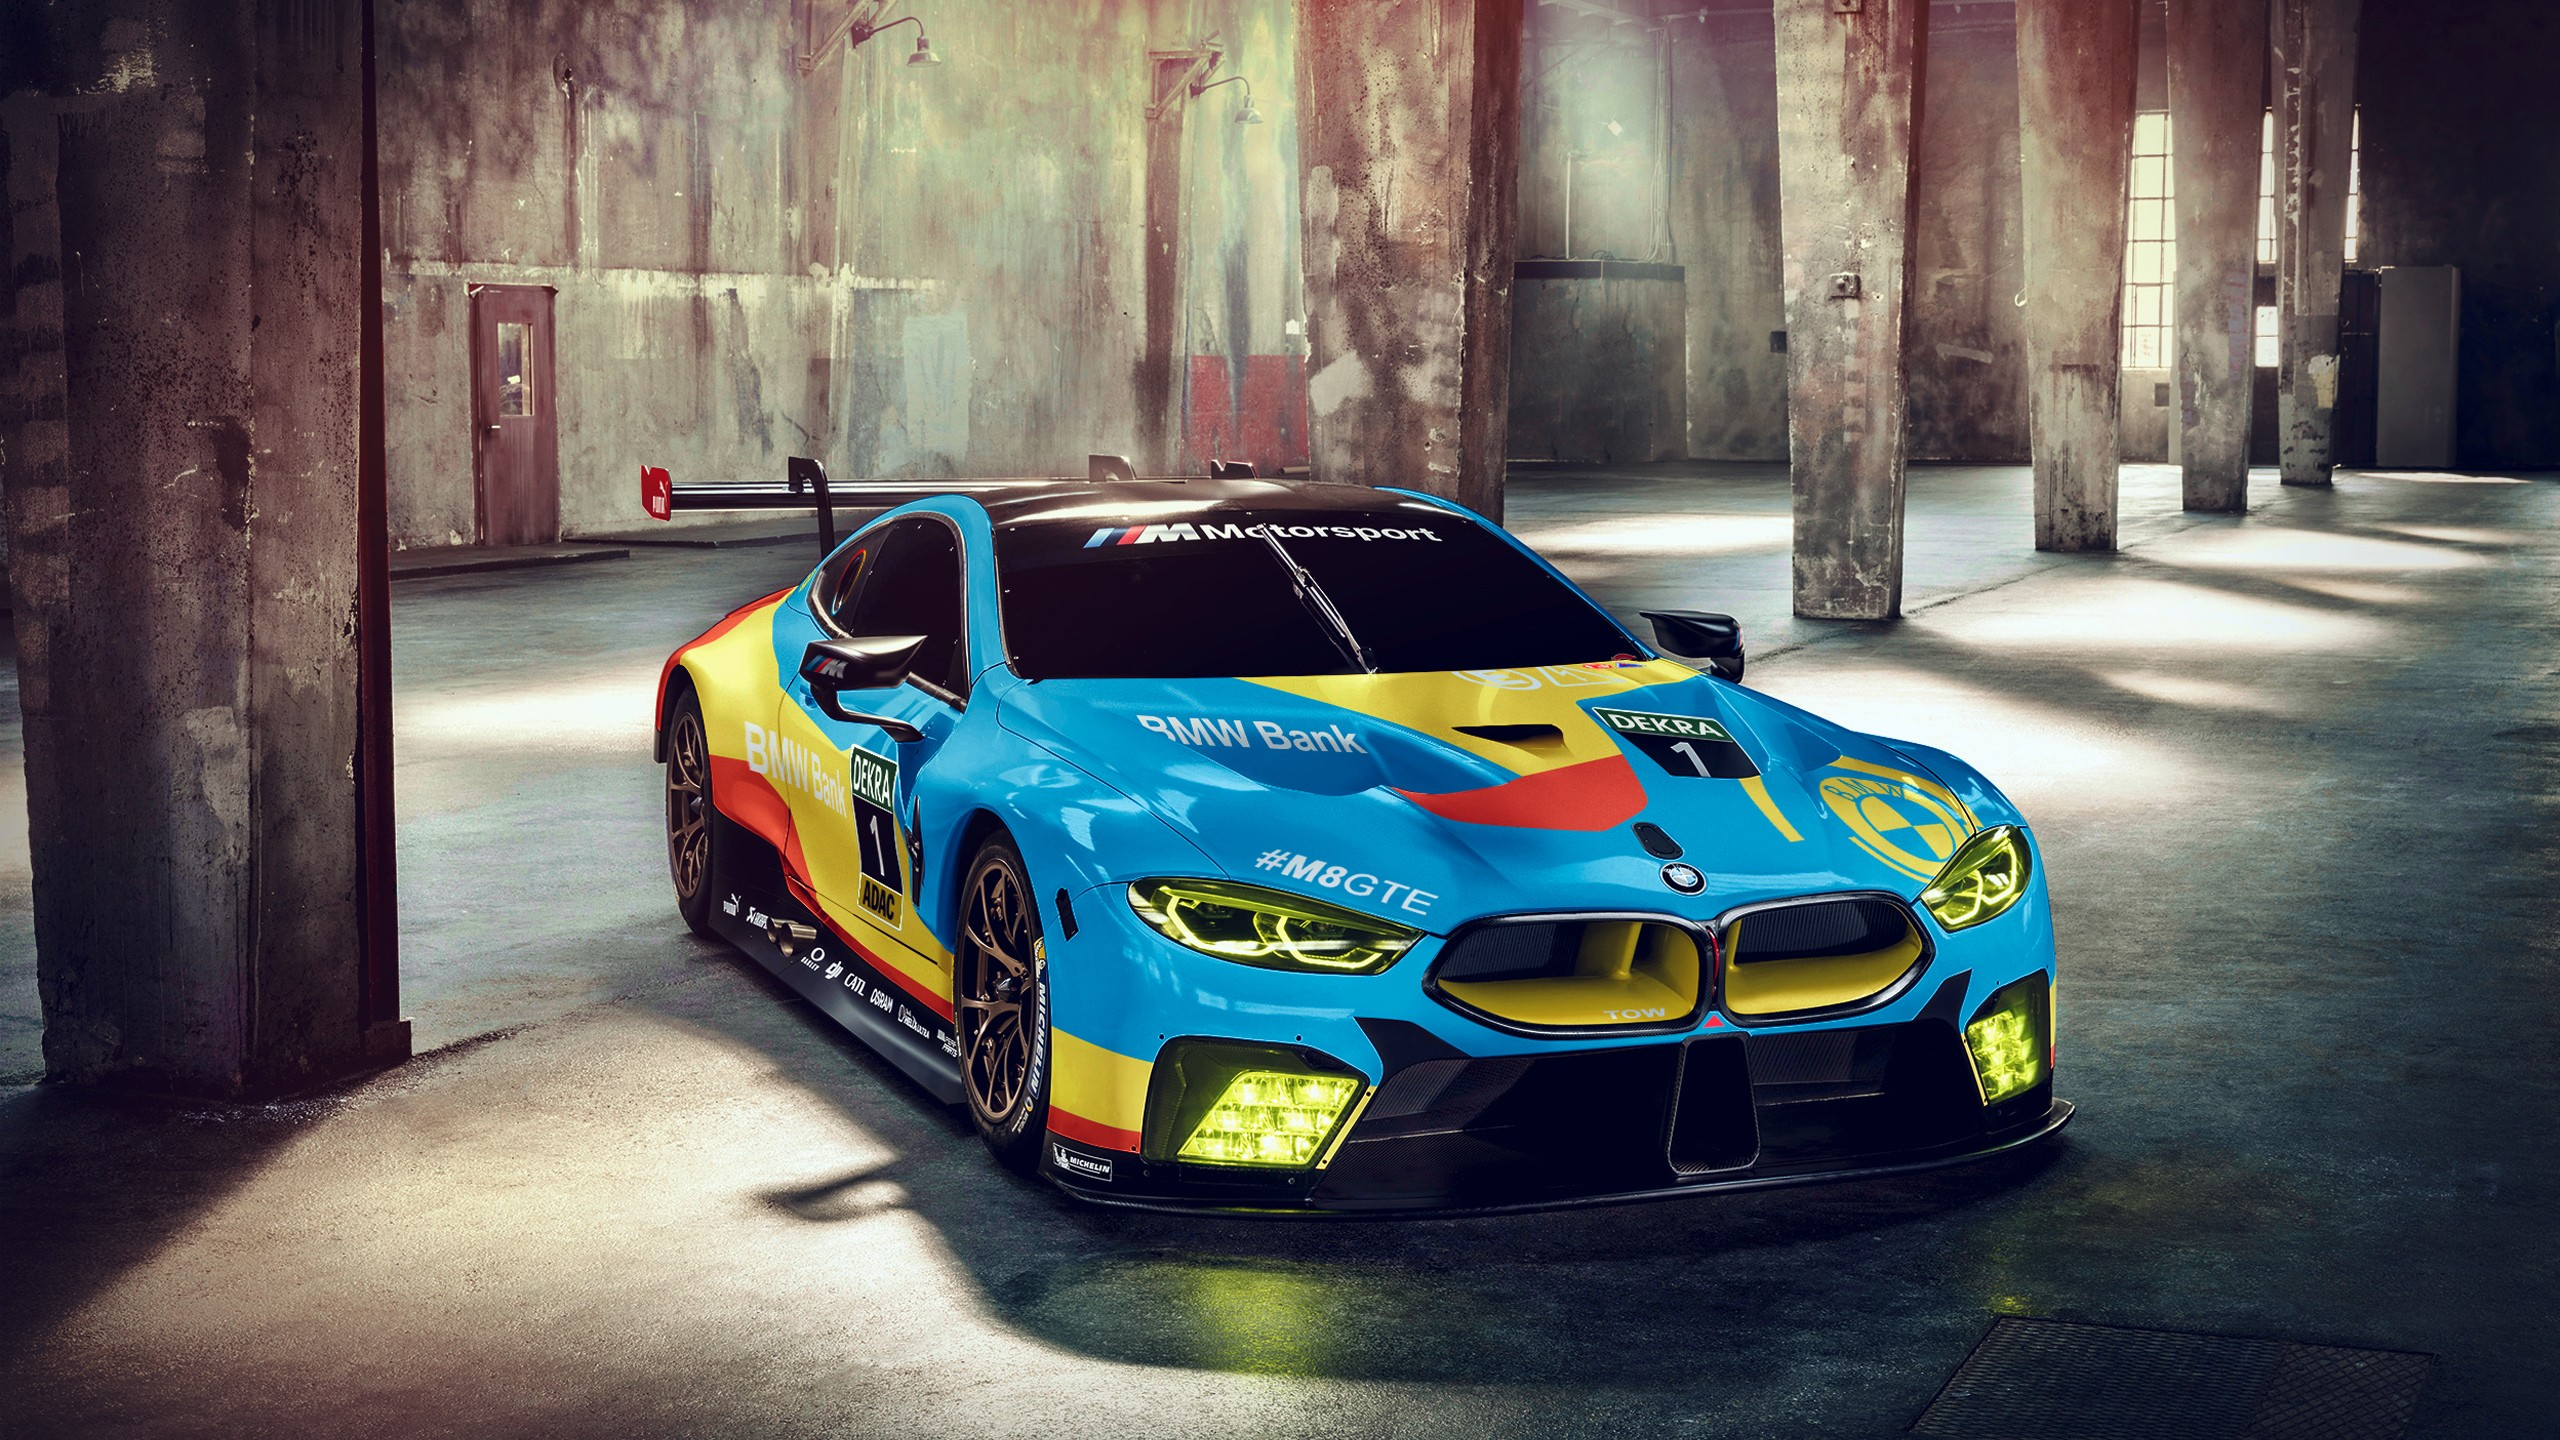 Widescreen Car Wallpapers Hd Bmw M8 Gte 2018 Wallpaper Hd Car Wallpapers Id 9270